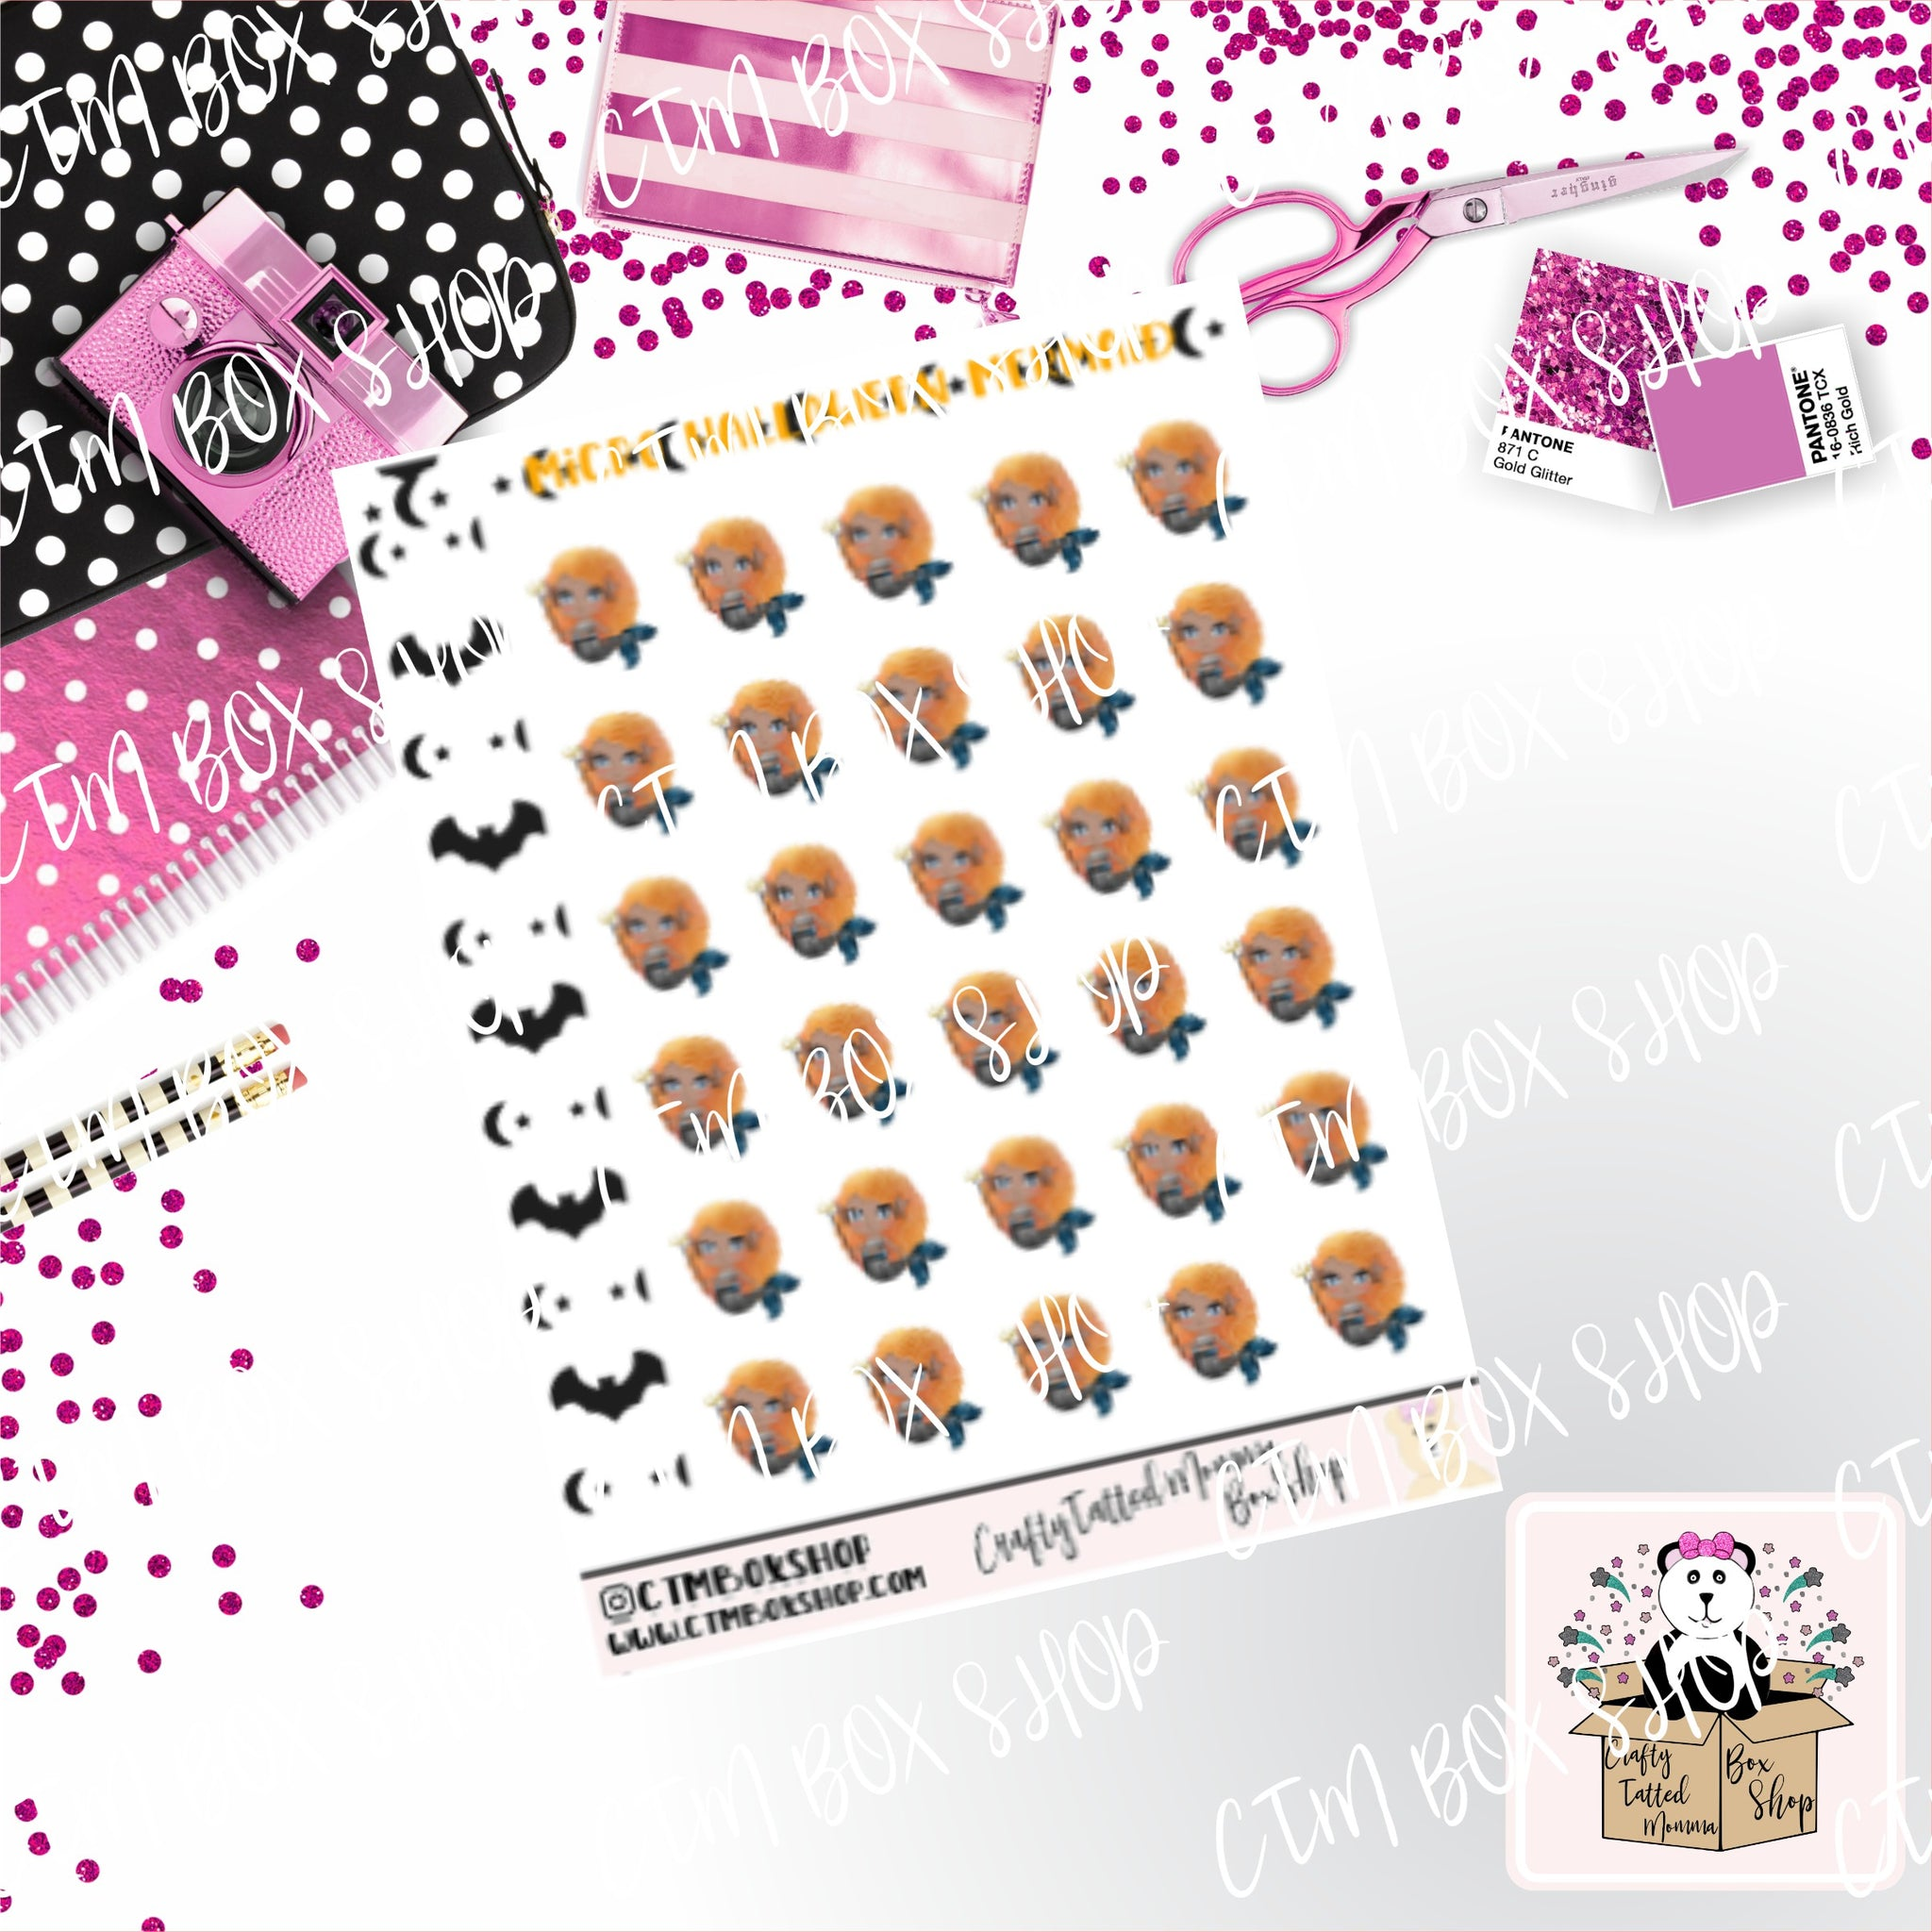 Micro Sticker Sheet   Lil Mermaids Halloween Pumpkin Queen   Planner Stickers   Halloween Stickers   Micro Planner Stickers